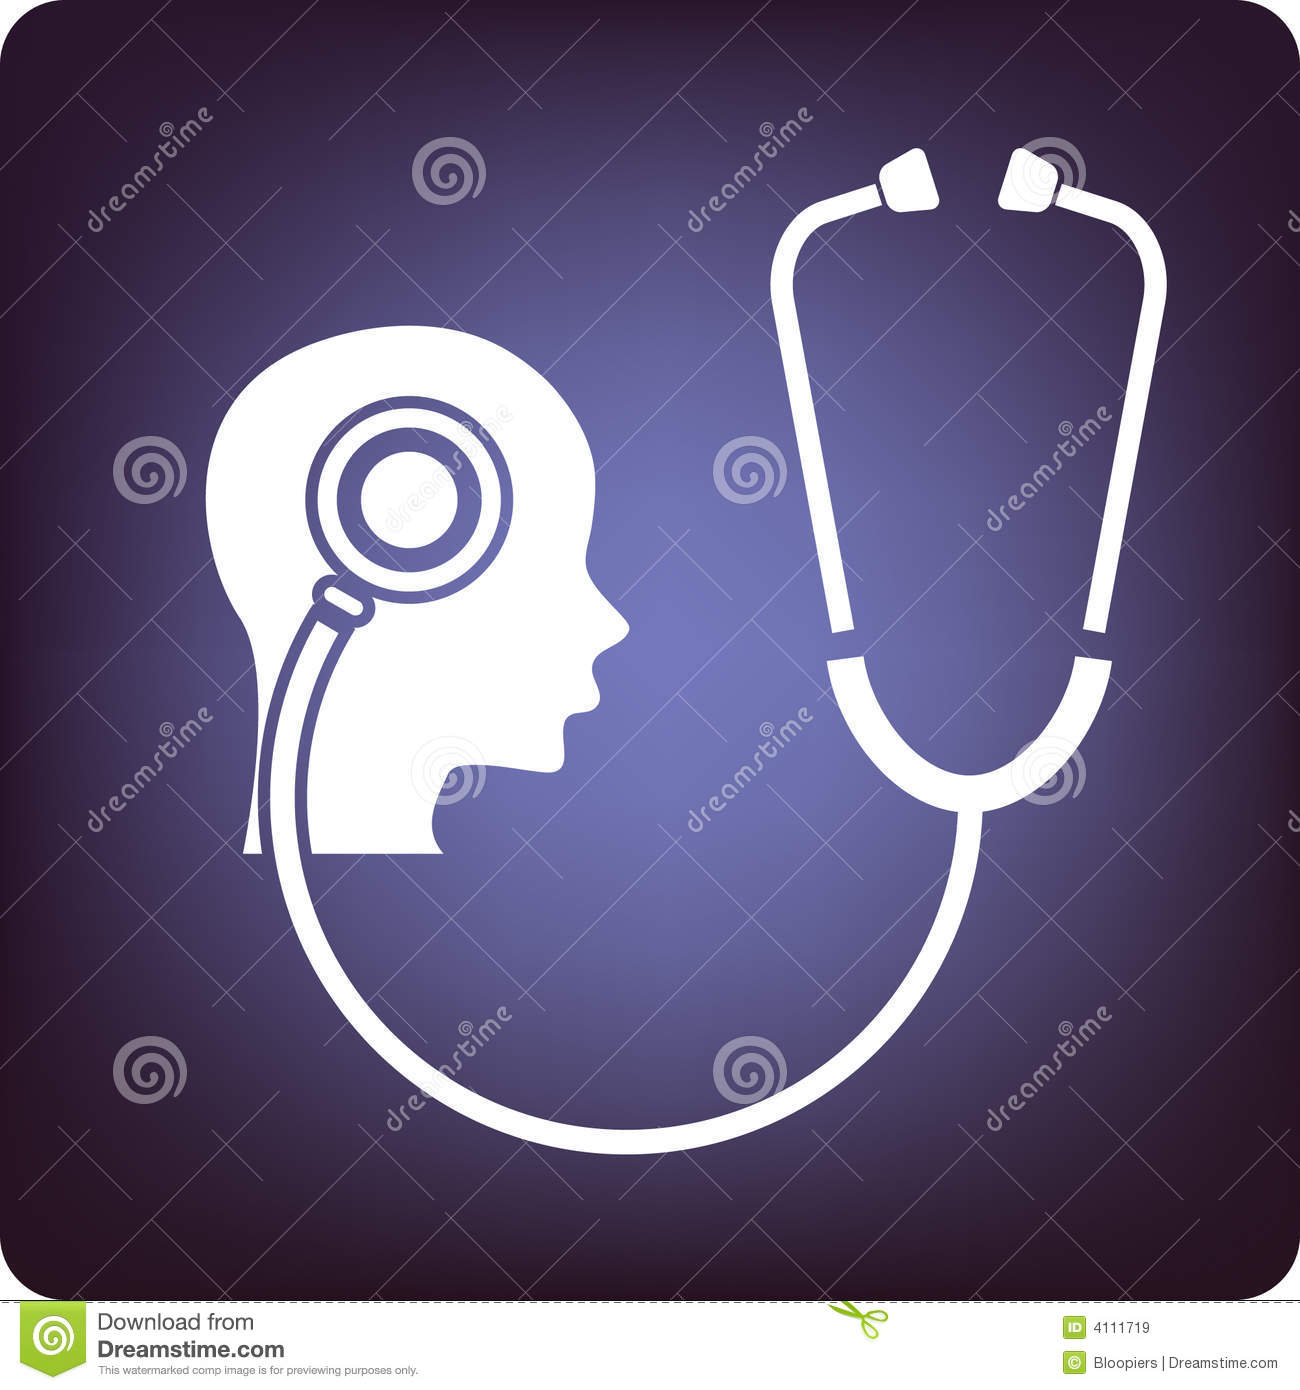 neurology royalty free stock images image 4111719 stethoscope clipart inshape of heart stethoscope clip arty